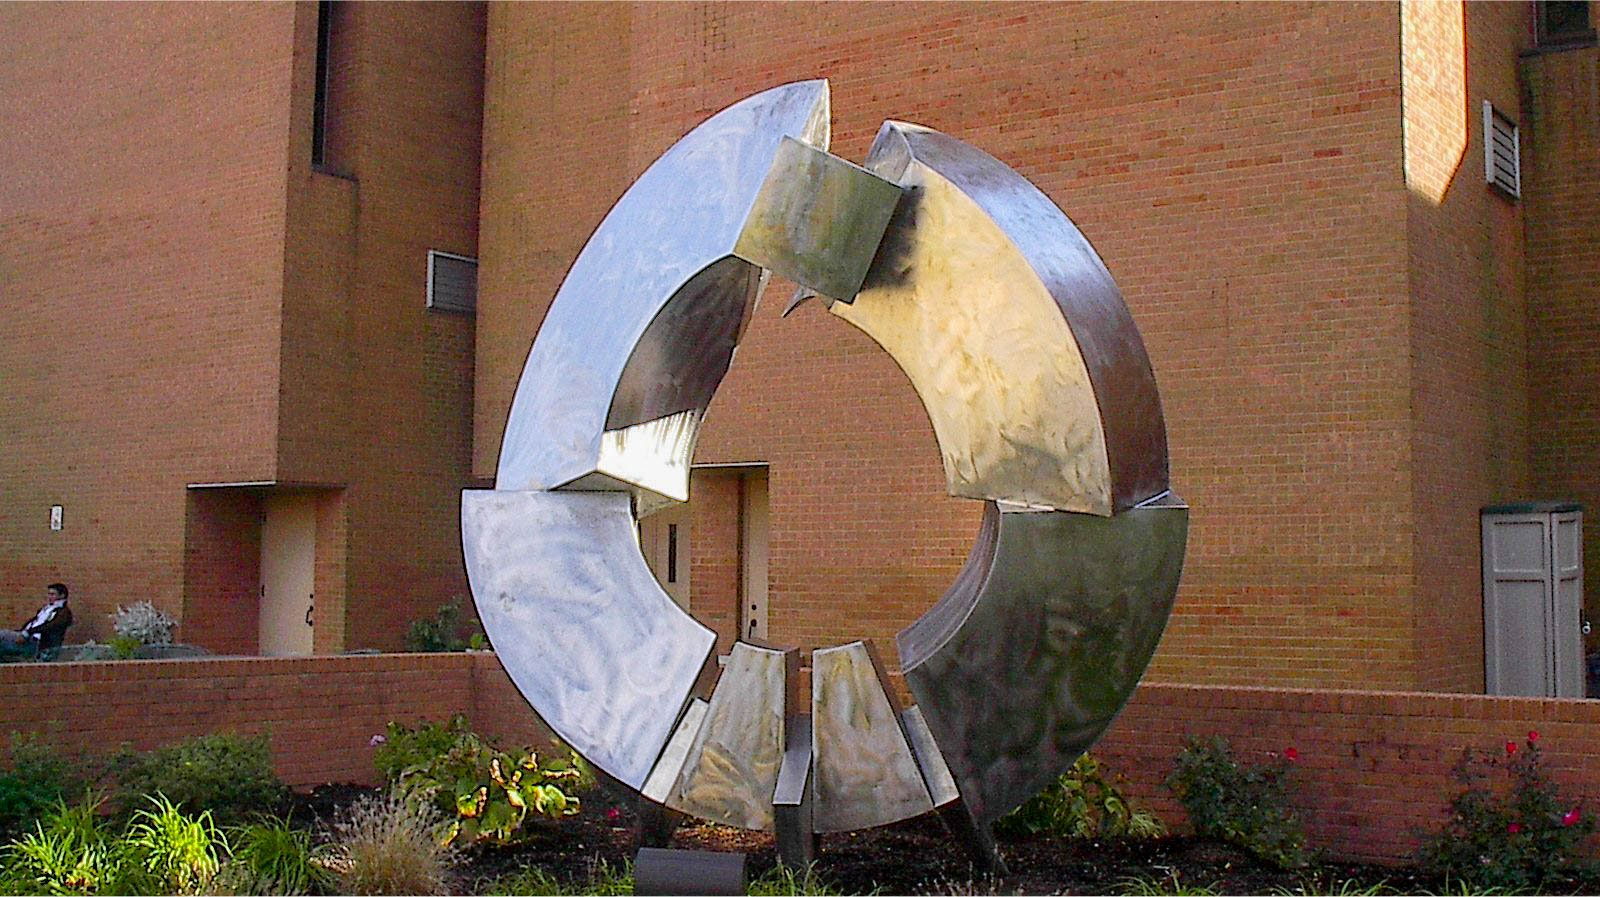 Fractured Form by Rob Lorenson Southwestern Illinois College, Belleville, Illinois